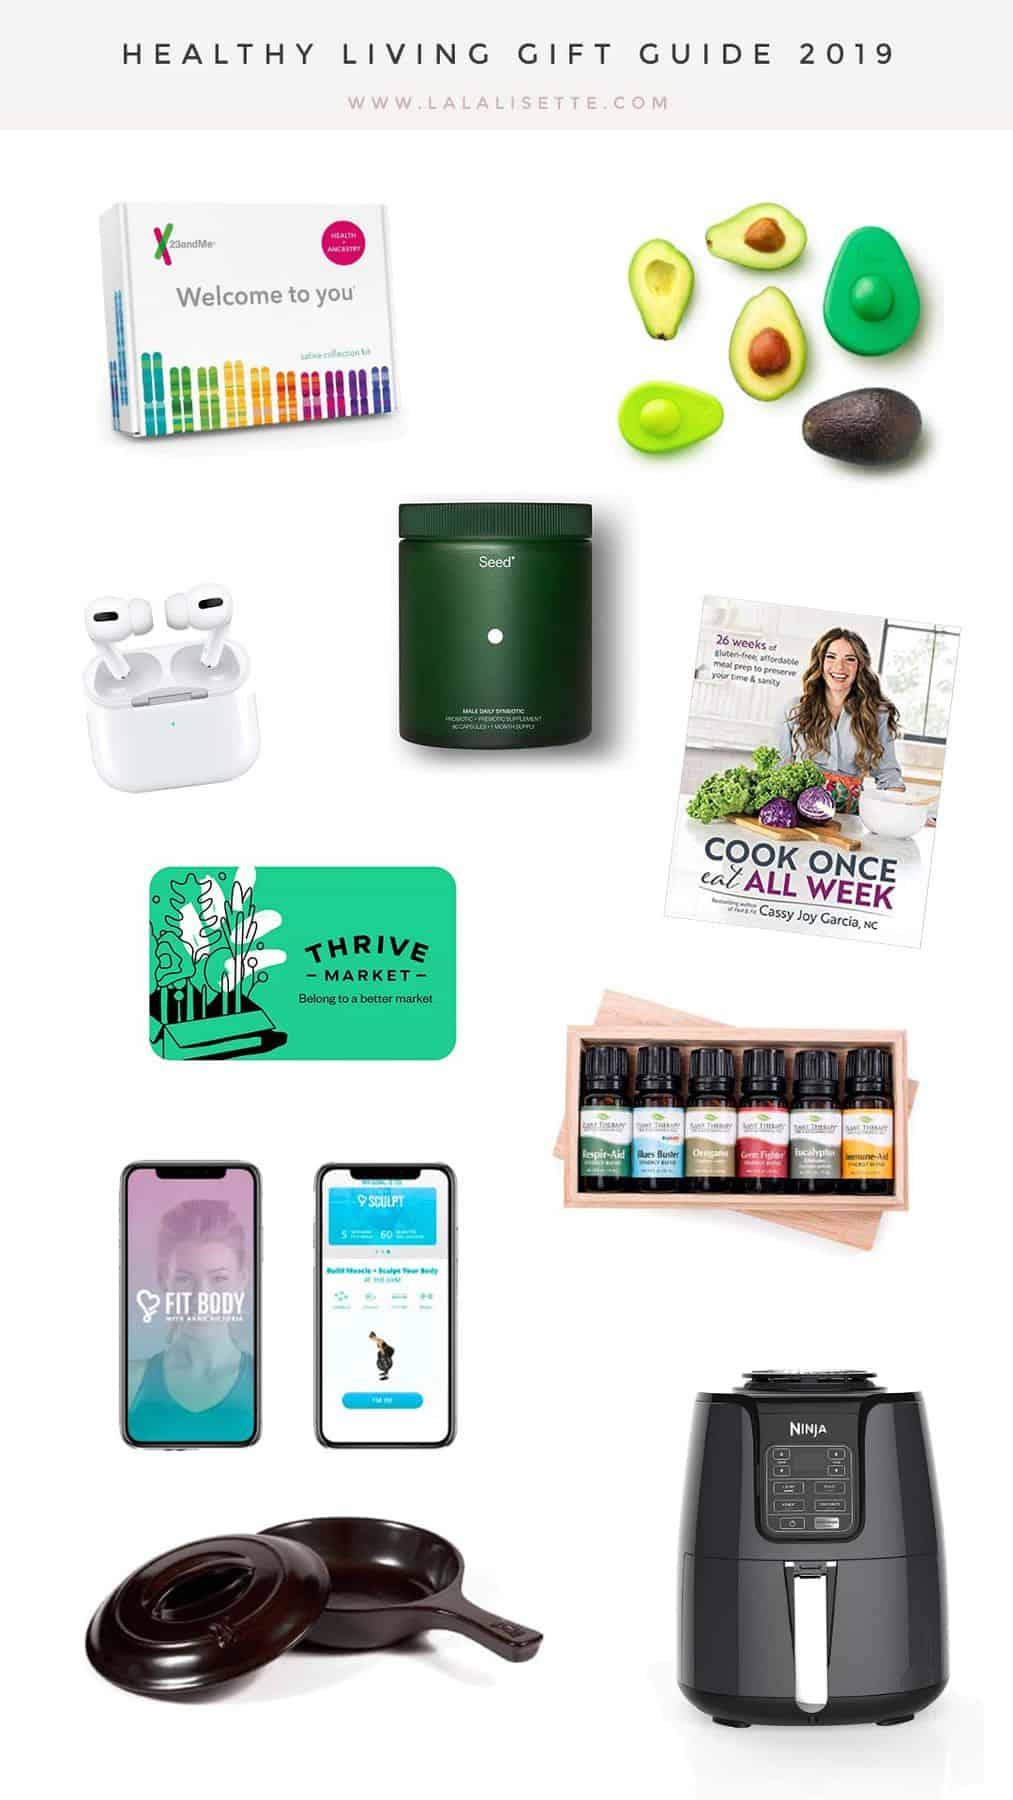 collage of items with title: Healthy Living Gift Guide 2019